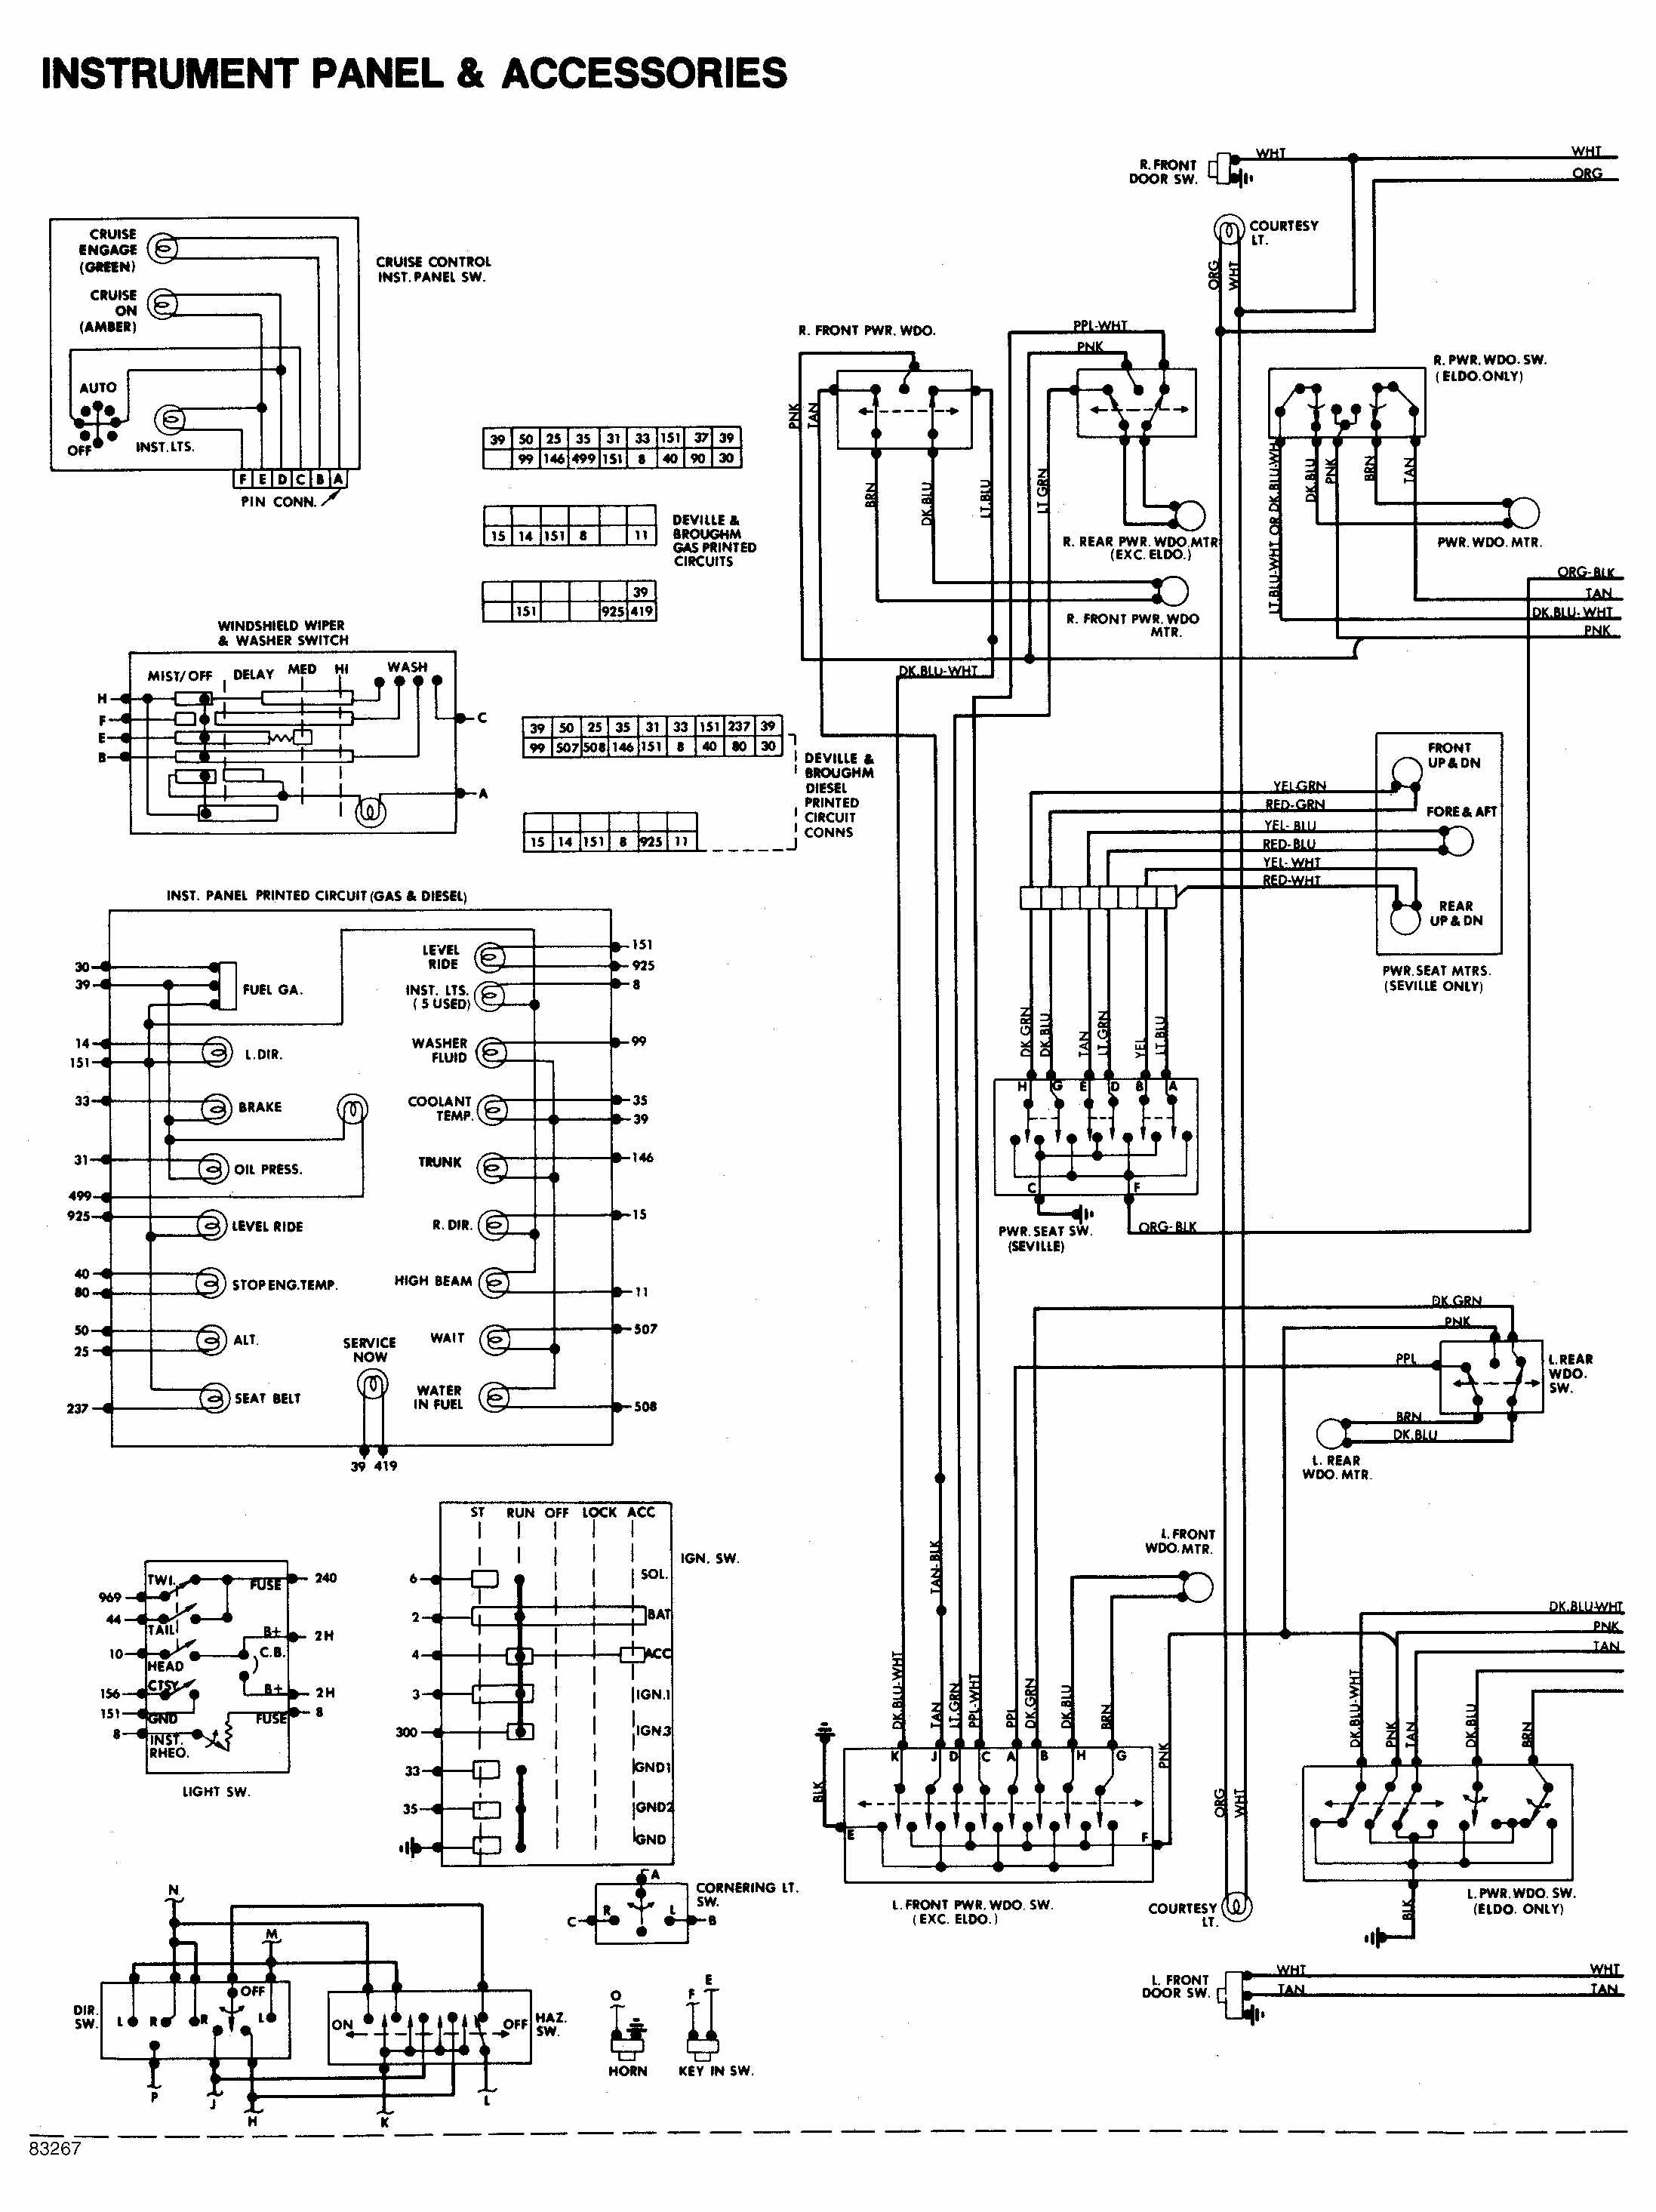 instrument panel and accessories wiring diagram of 1984 cadillac deville gm wiring diagrams gm wiring diagrams online \u2022 wiring diagrams j wiring diagram for 97 cadillac deville at gsmportal.co